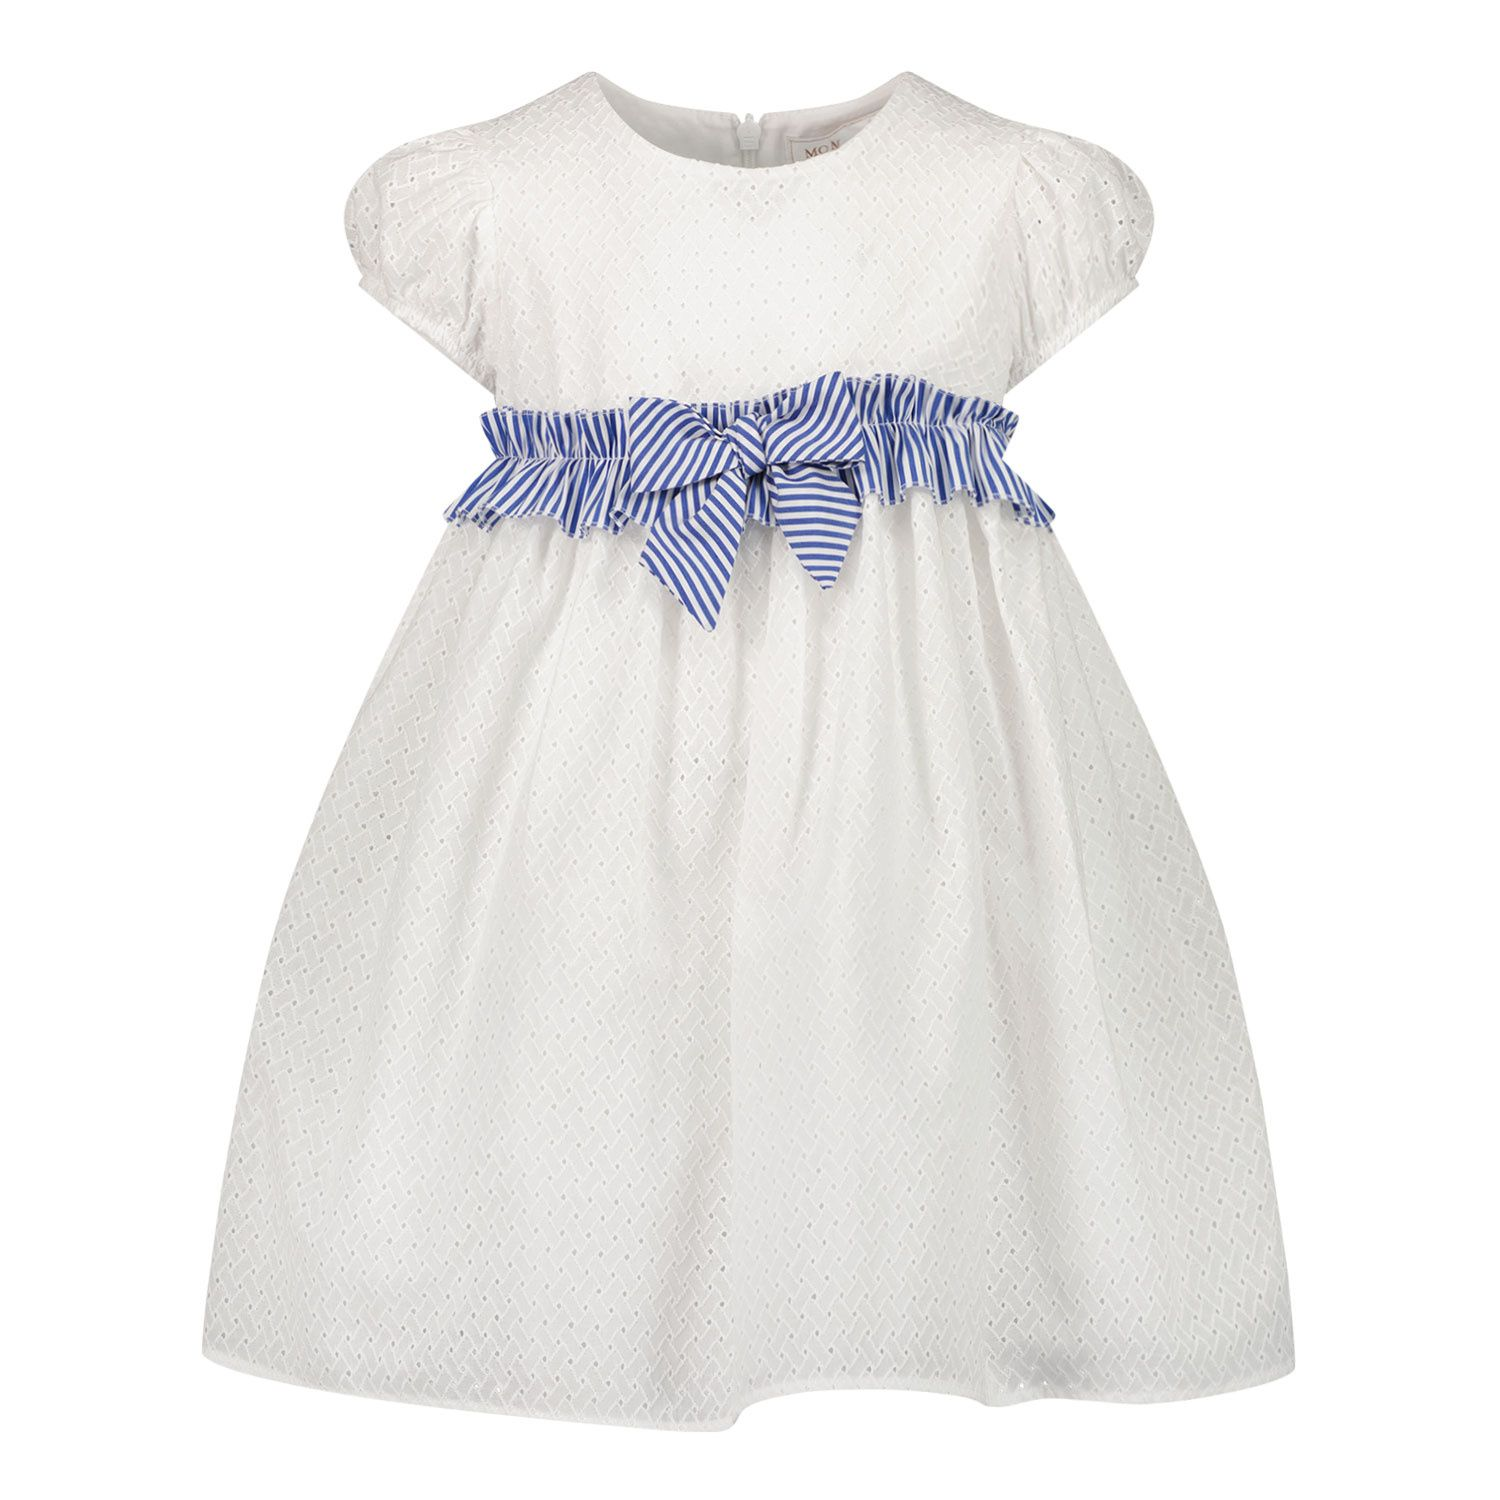 Picture of MonnaLisa 377910 baby dress white